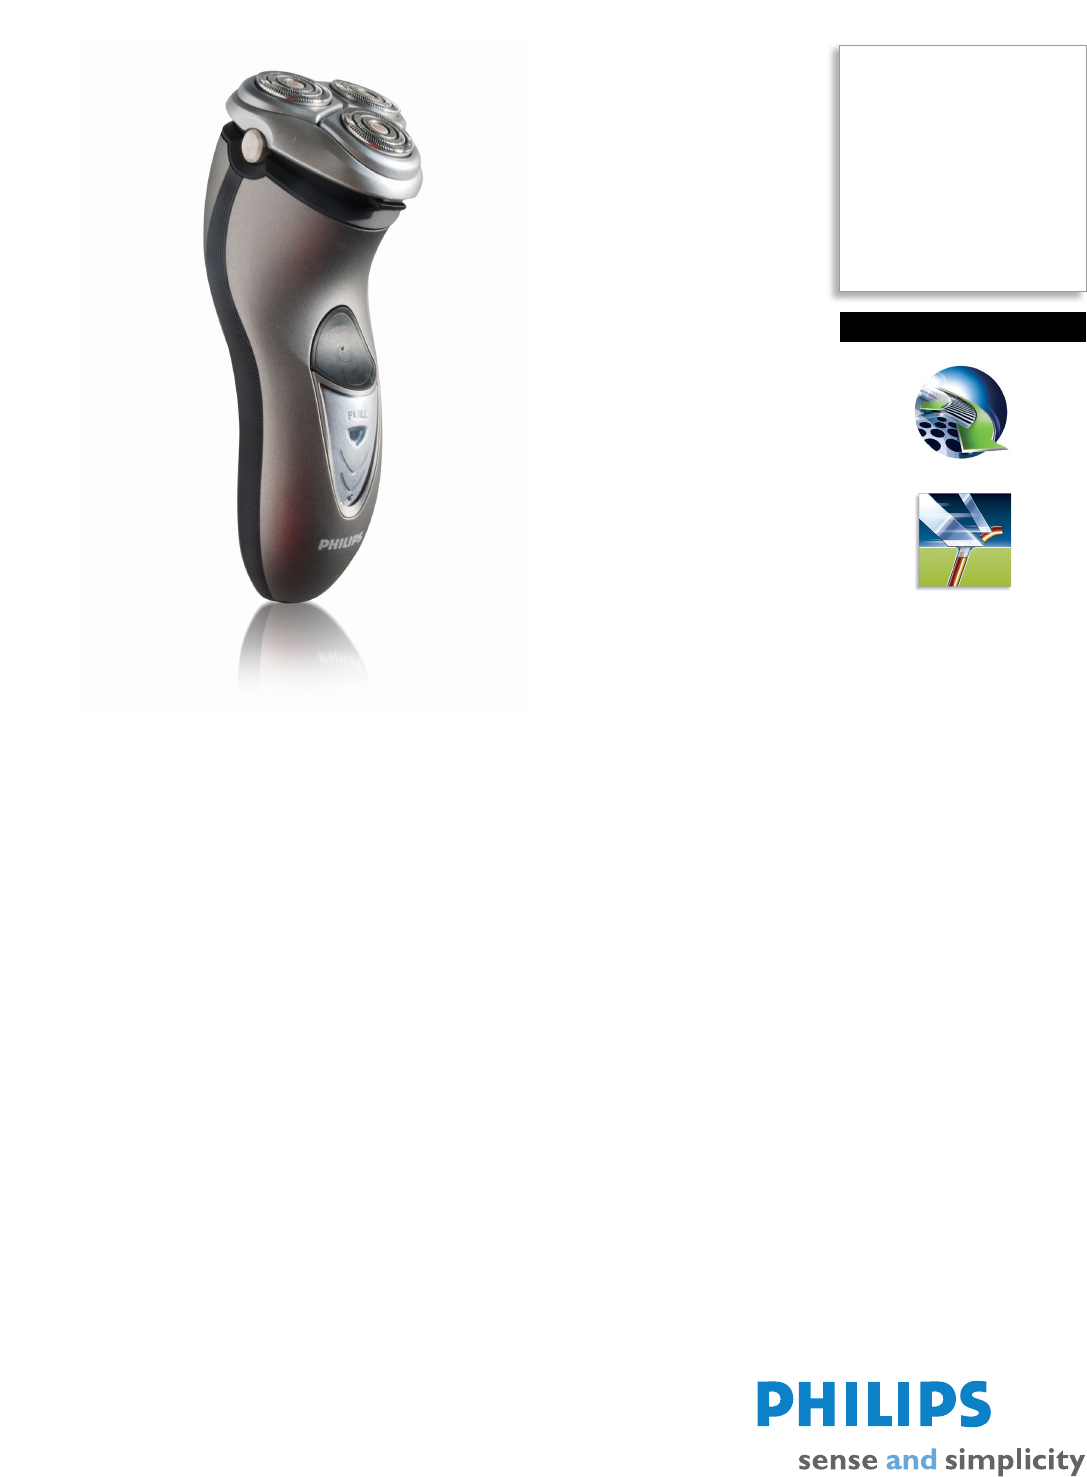 philips electric shaver hq8240 user guide manualsonline com rh manualsonline com User Guide Template Quick Reference Guide